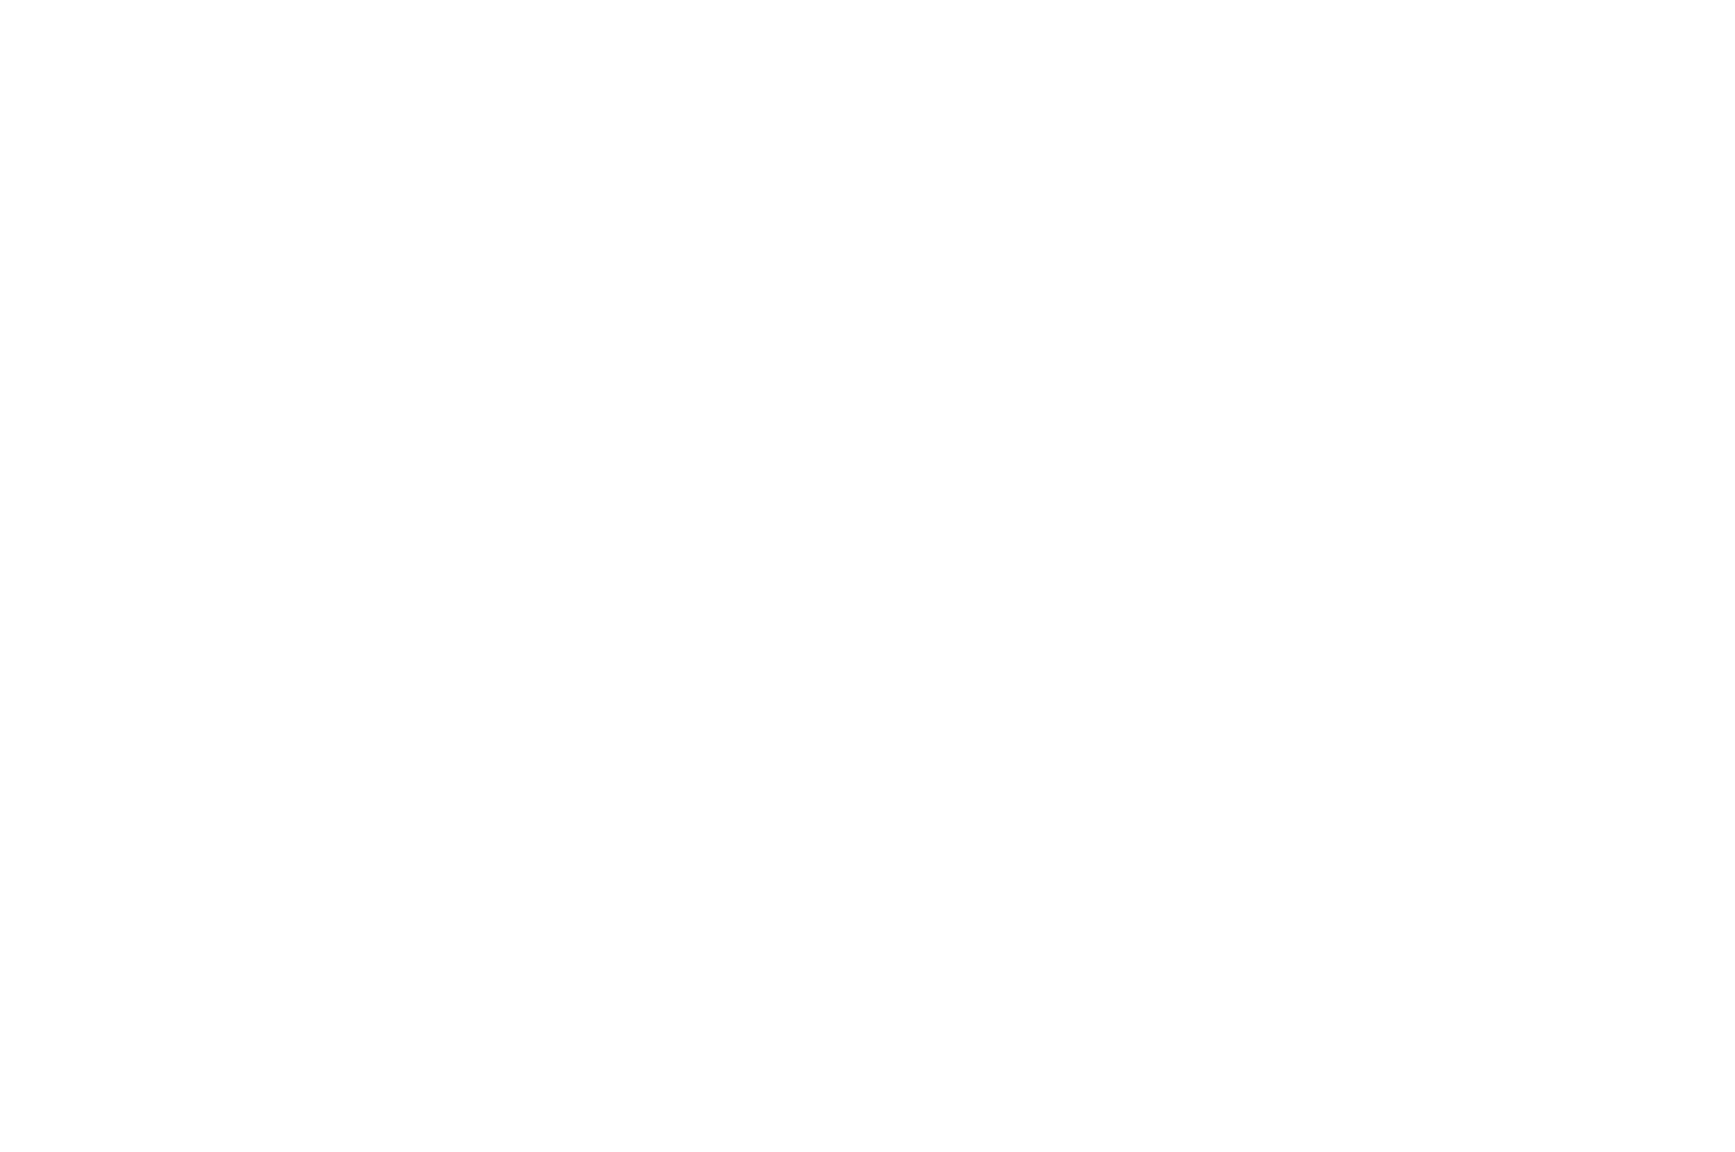 OFFICIAL SELECTION - Short of the Month Film Festival - 2016